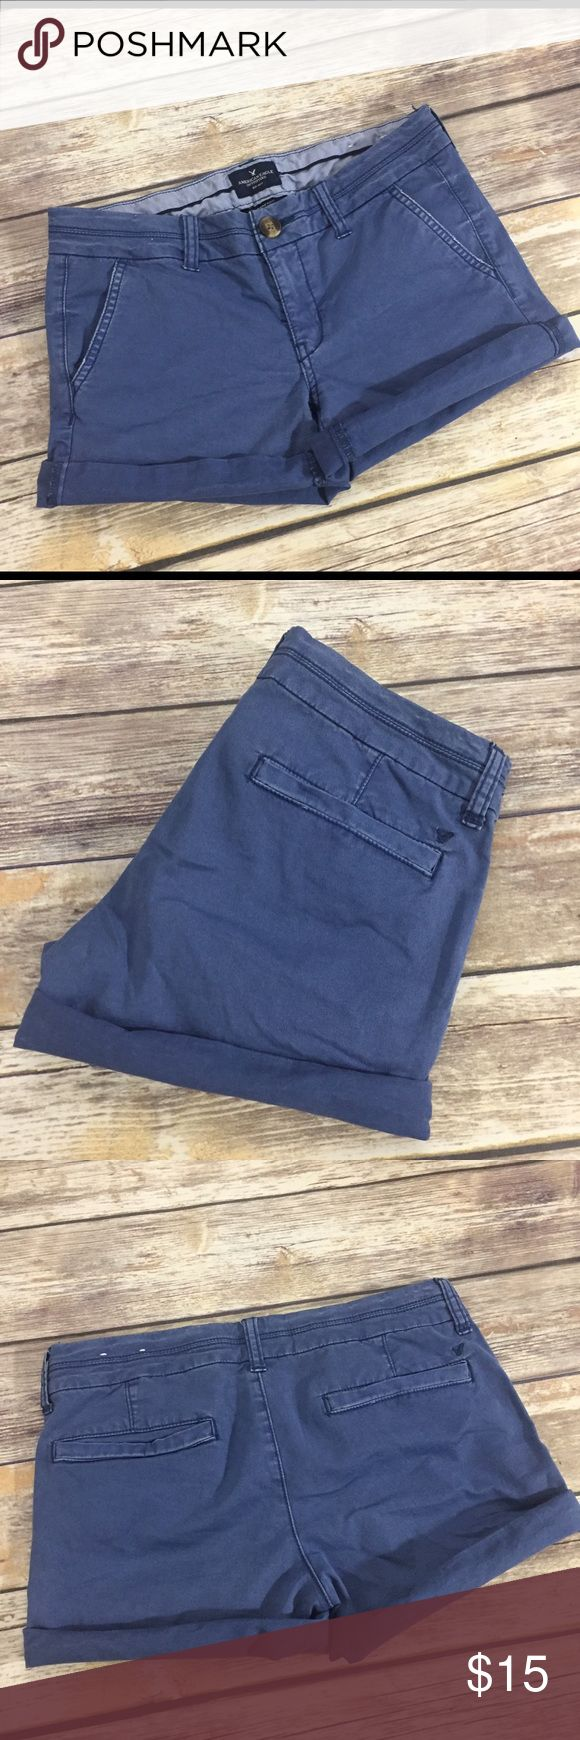 """AEO Midi navy Blue Chino Shorts American Eagle Outfitters navy blue Chino """"Midi"""" Shorts in size 4. Made of 97% cotton and 3% elastane. Very good condition with no flaws. Approximate inseam with legs unrolled is 5"""". ⚓️No trades or holds. I negotiate only through the offer button. Any measurements listed are approximate since I am not a seamstress. 🚭🐩T1 American Eagle Outfitters Shorts"""